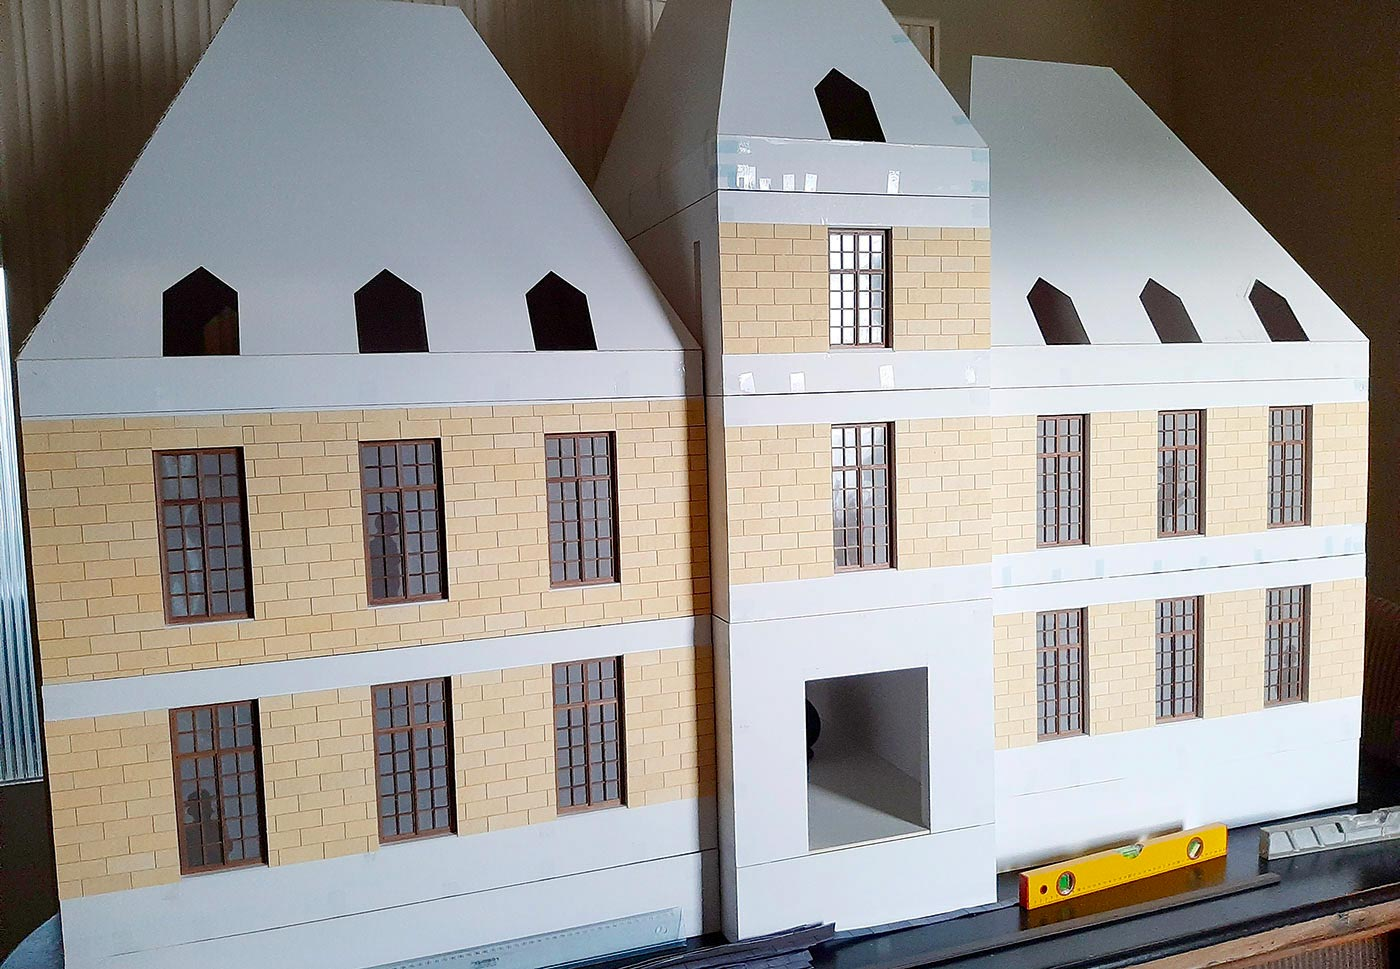 1/10th scale model of Marlinspike Hall